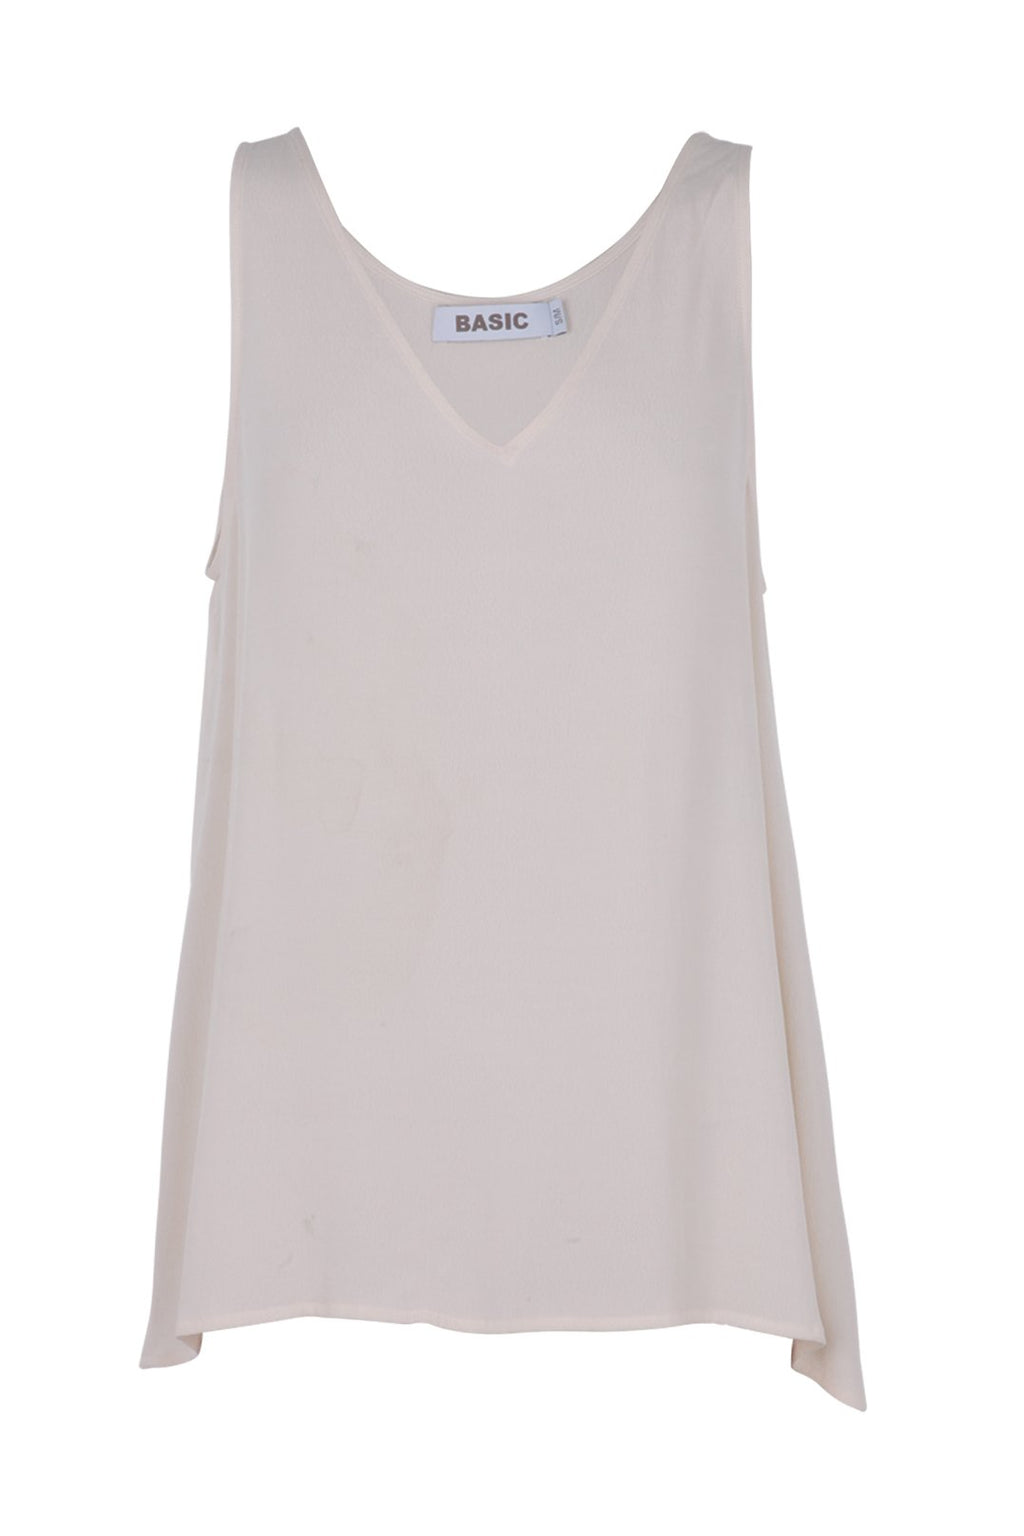 Basic Tank - Bisque - Isle of Mine Clothing - Basic